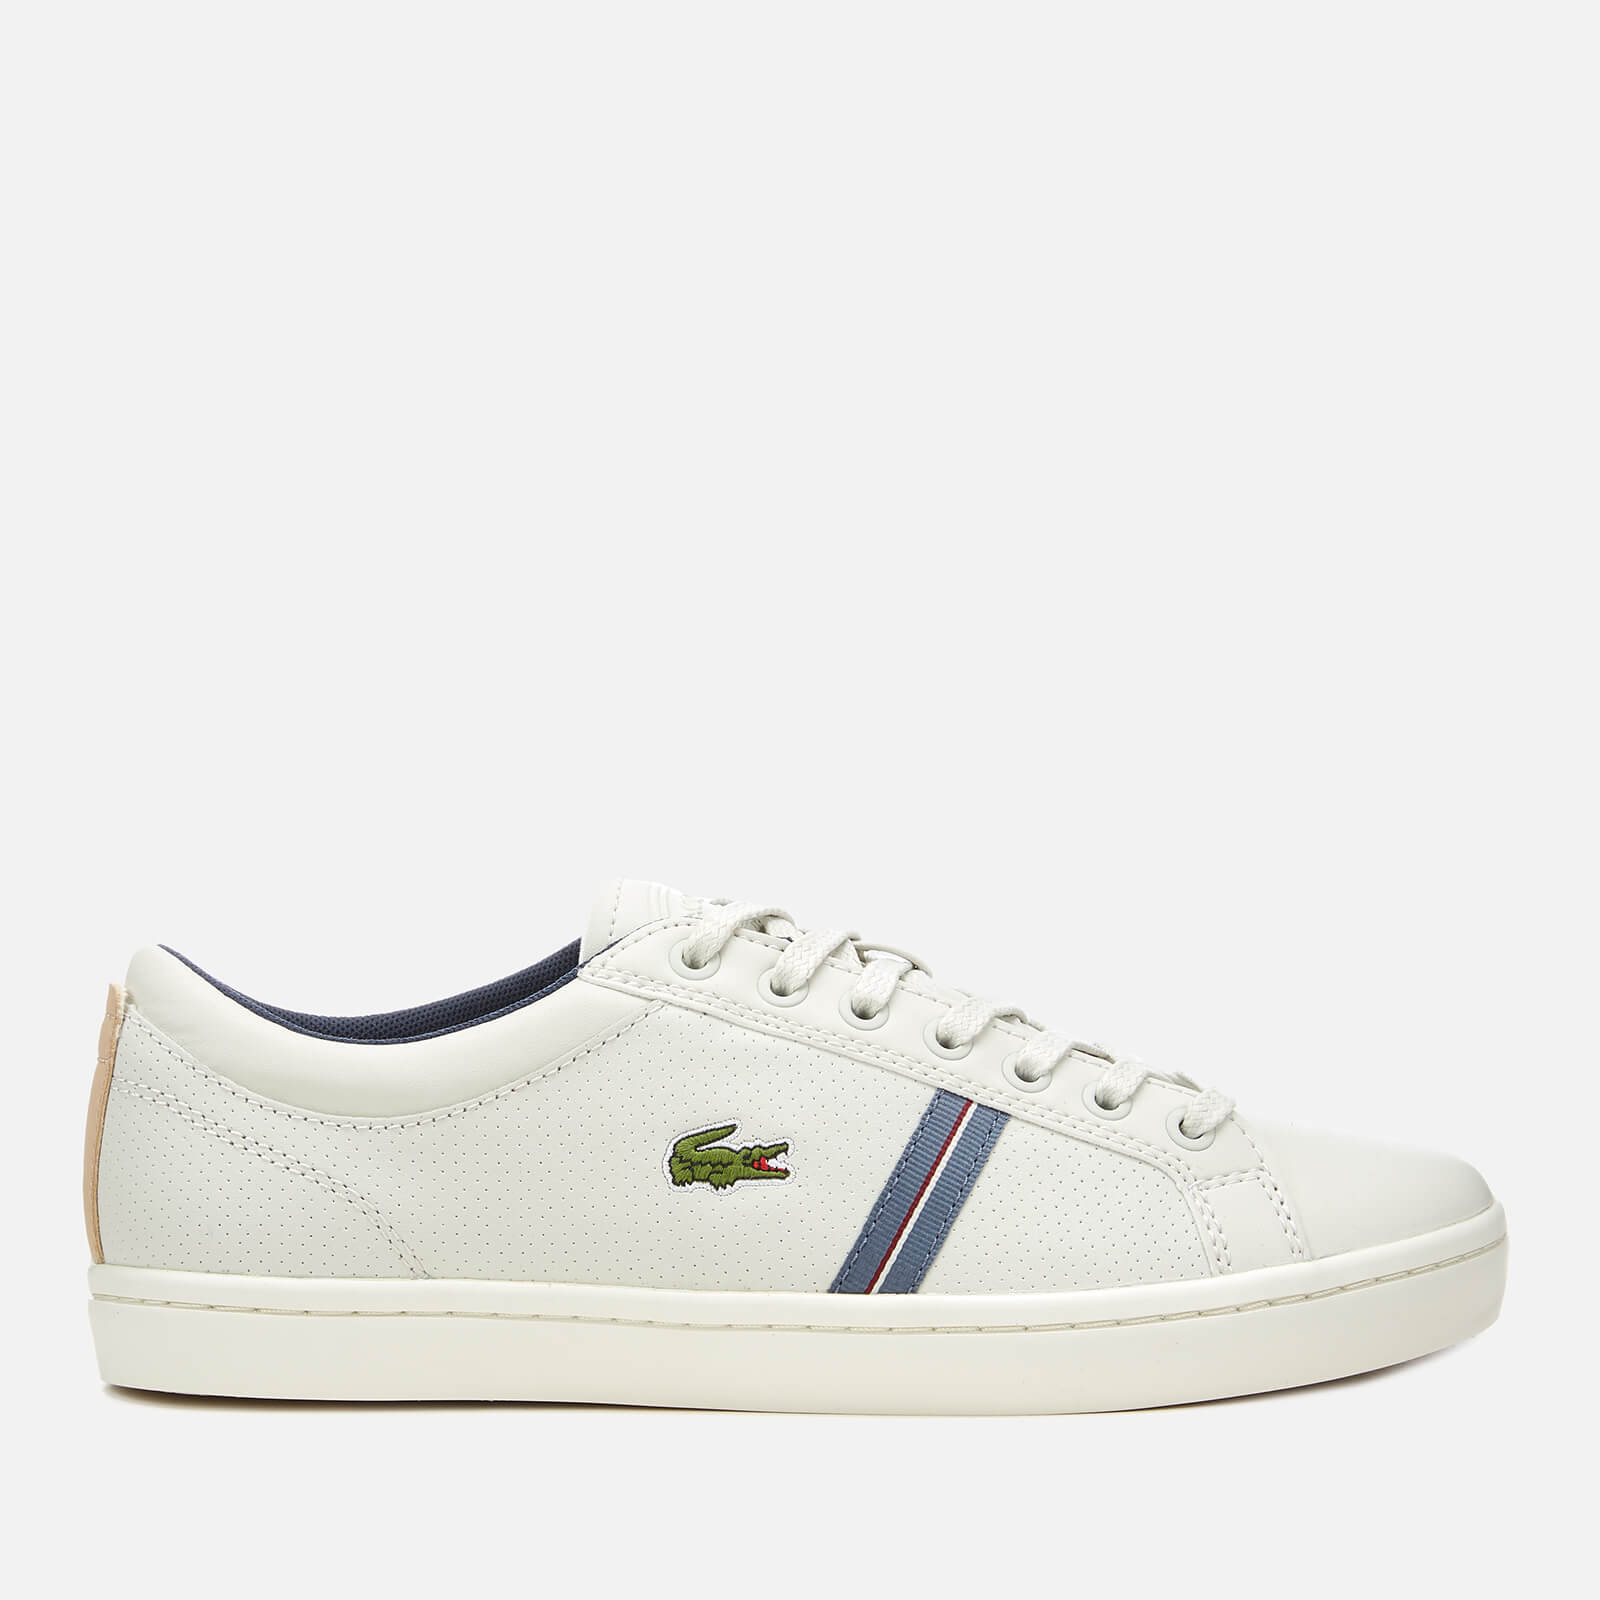 caf749460 Lacoste Men s Straightset Sport 318 1 Leather Trainers - Off White Natural  - Free UK Delivery over £50